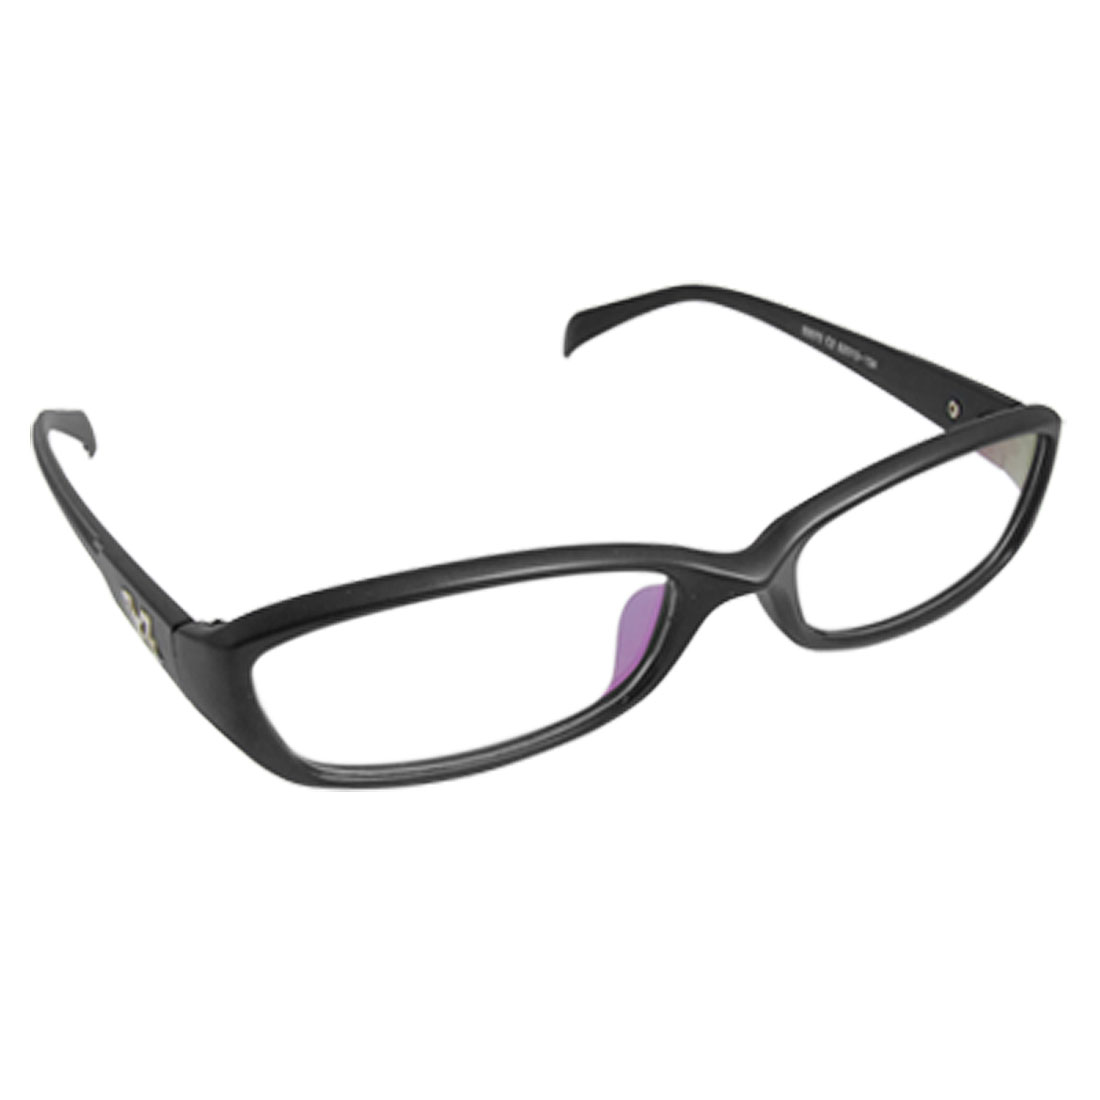 Metal Decor Rectangular Lens Black Full Rim Plain Glasses for Lady